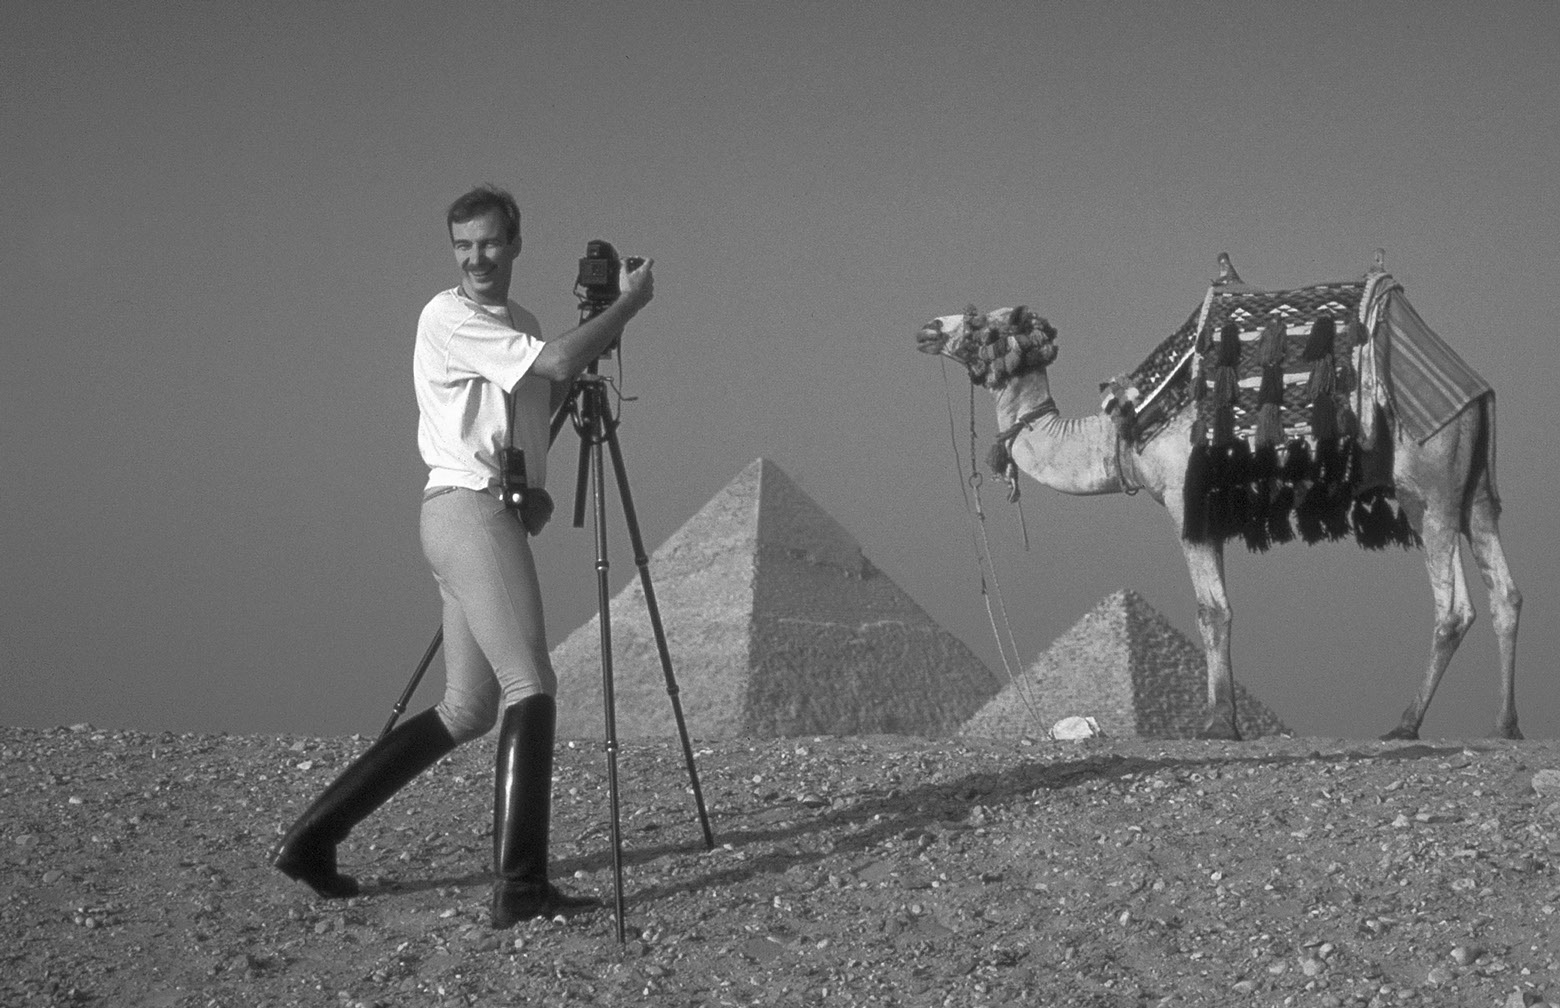 Will in Egypt